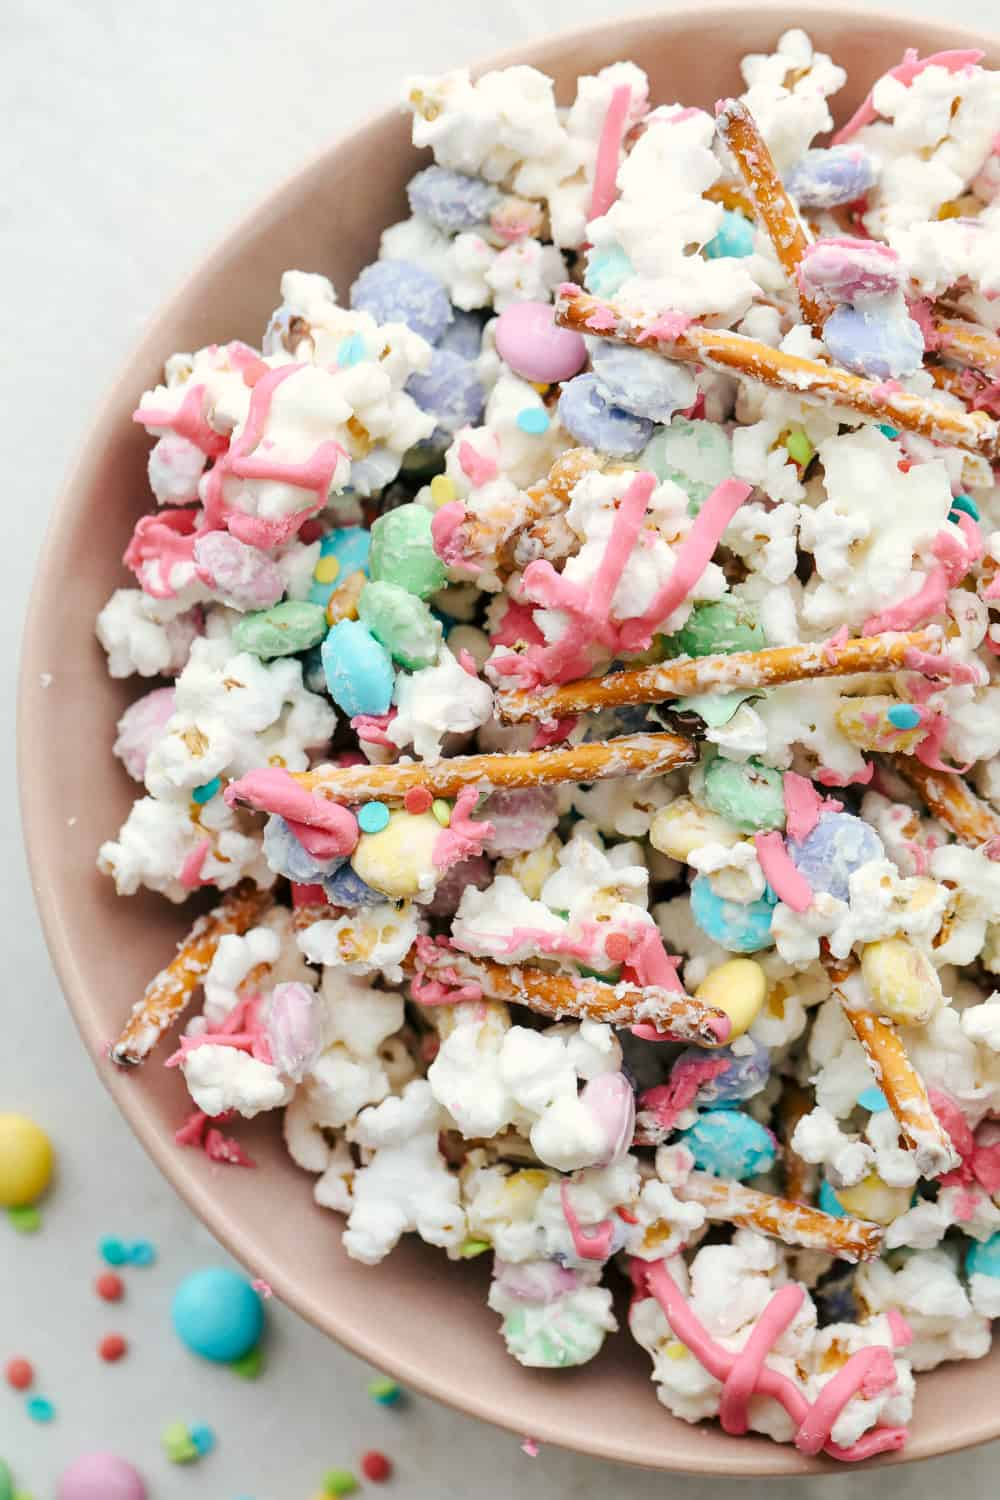 A Bowl full of Bunny Bait or Funfetti popcorn.